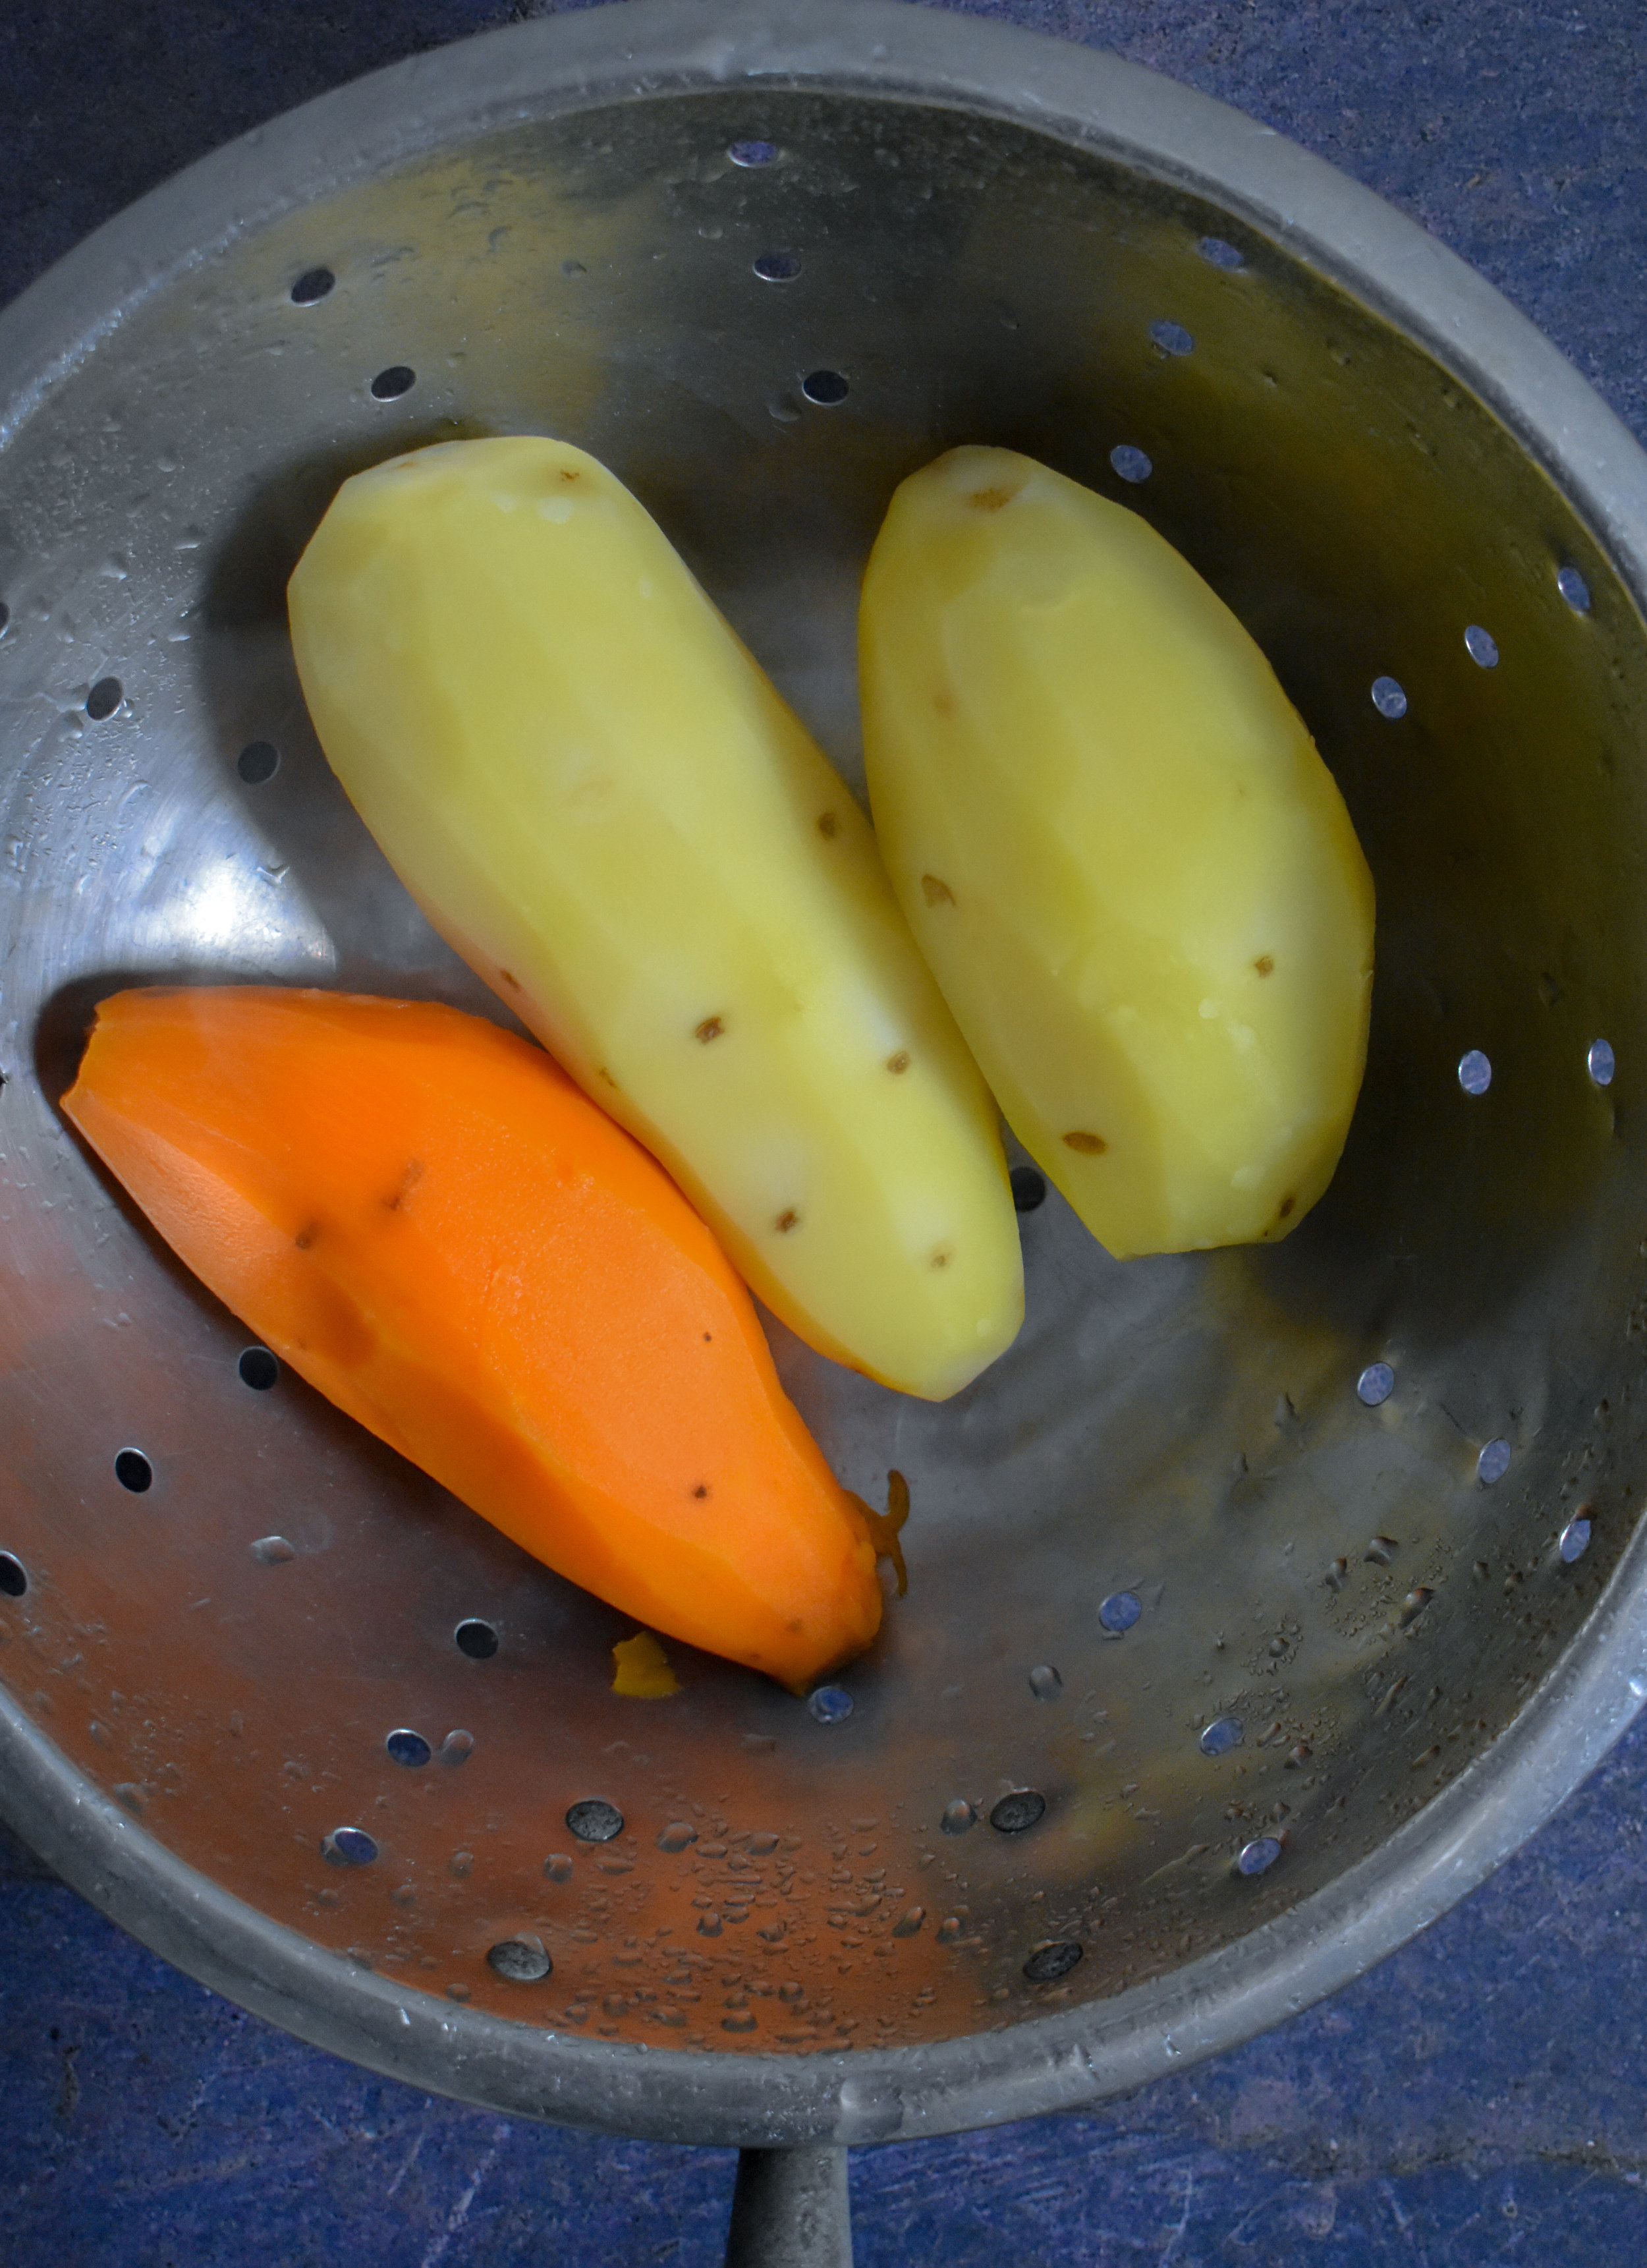 1. Boil potatoes for 10 minutes in a large pot and then strain.